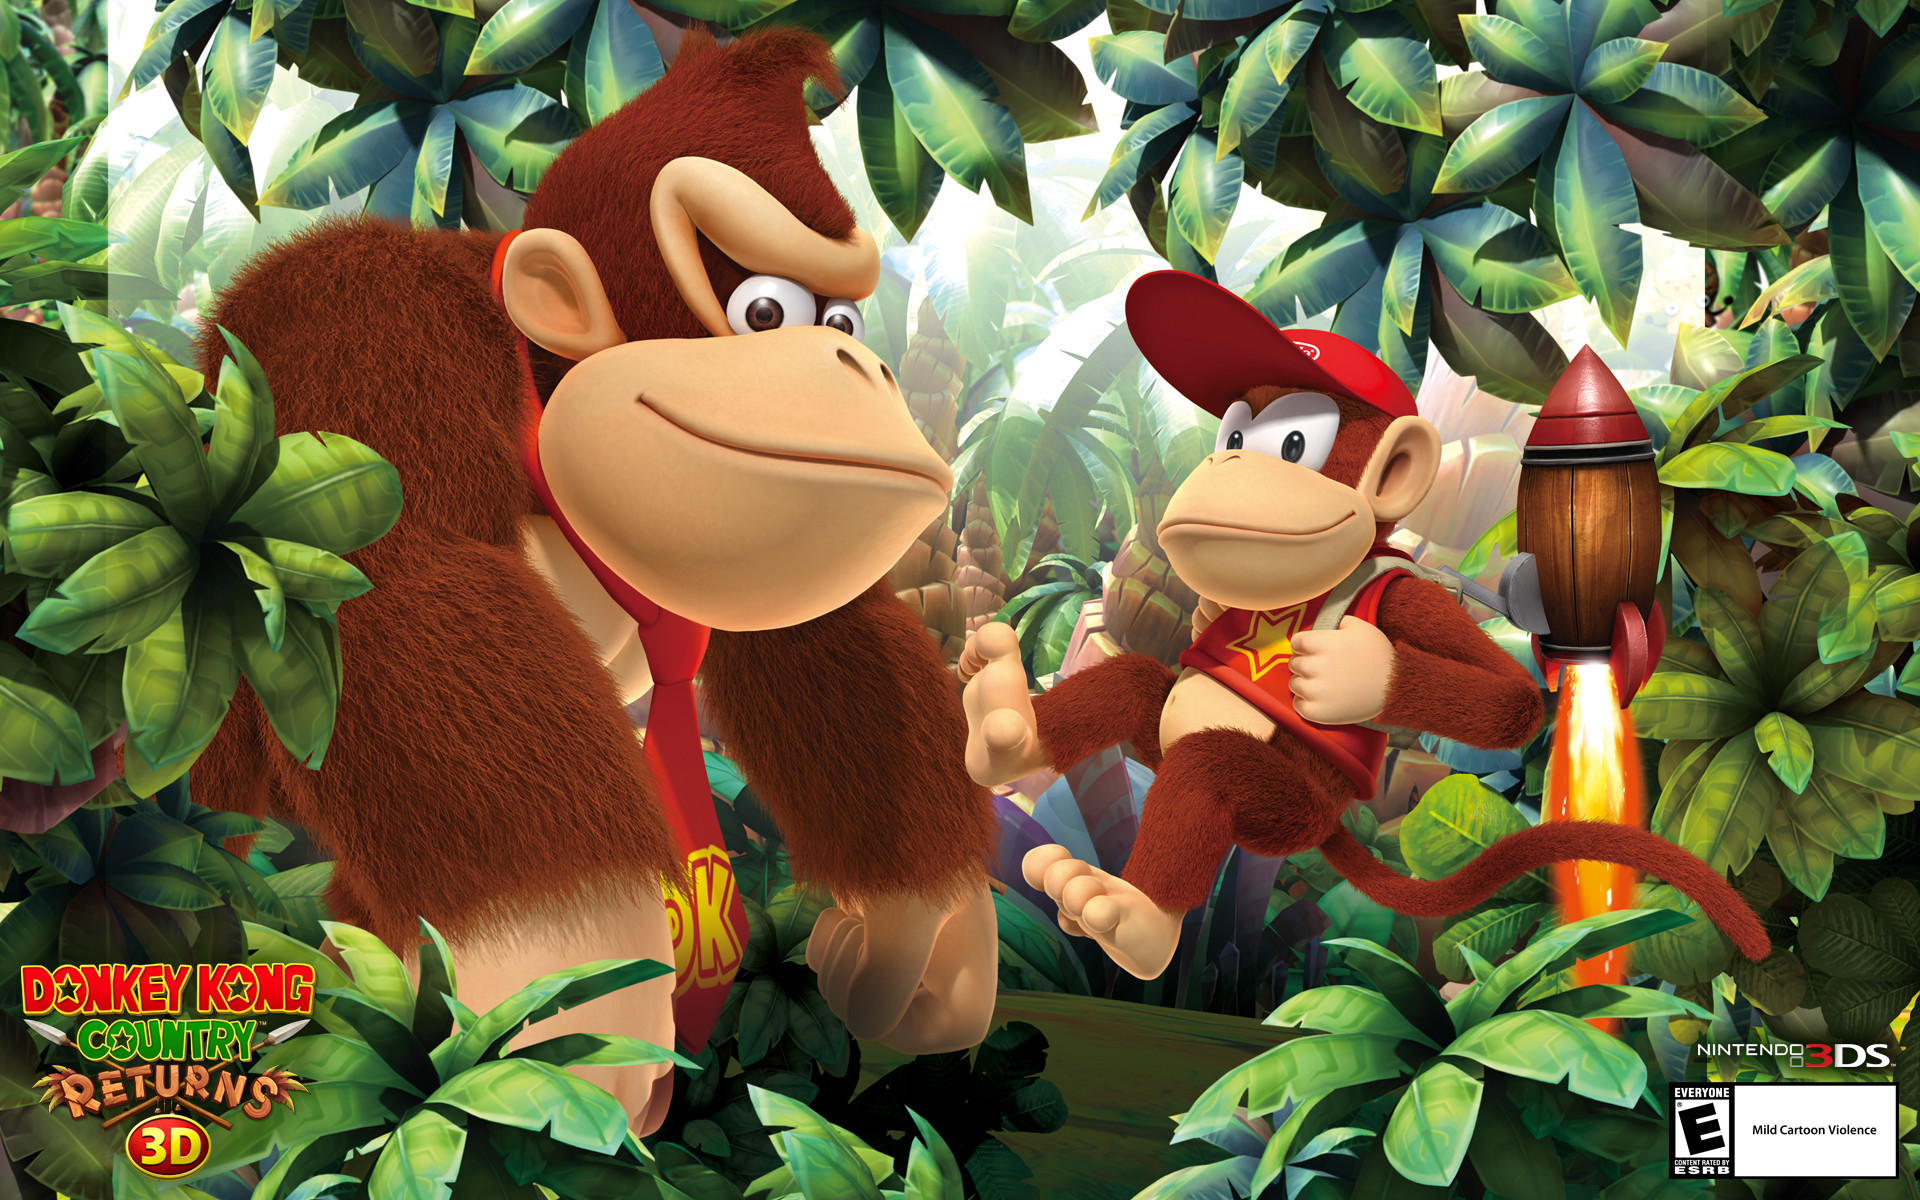 1920x1200 Wallpapers Donkey Kong Country Returns D for Nintendo DS